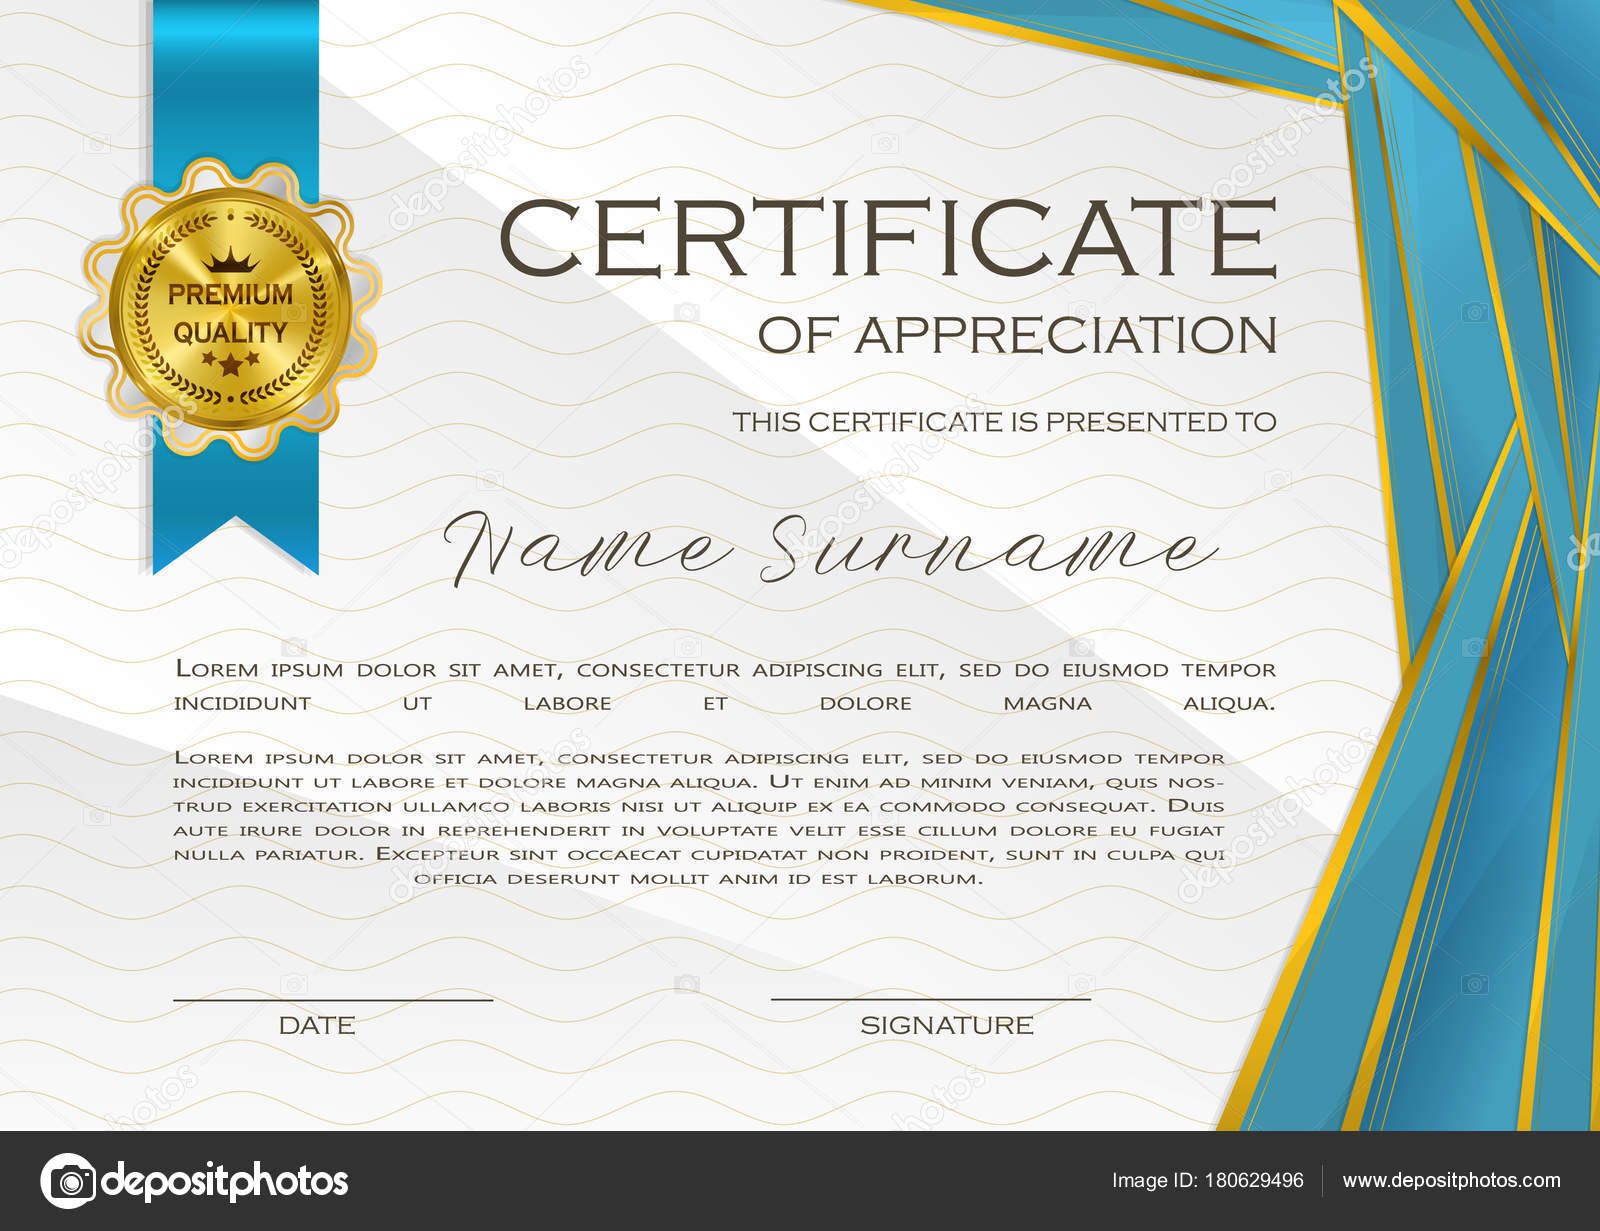 Qualification Certificate Appreciation Design Elegant Luxury Modern ...